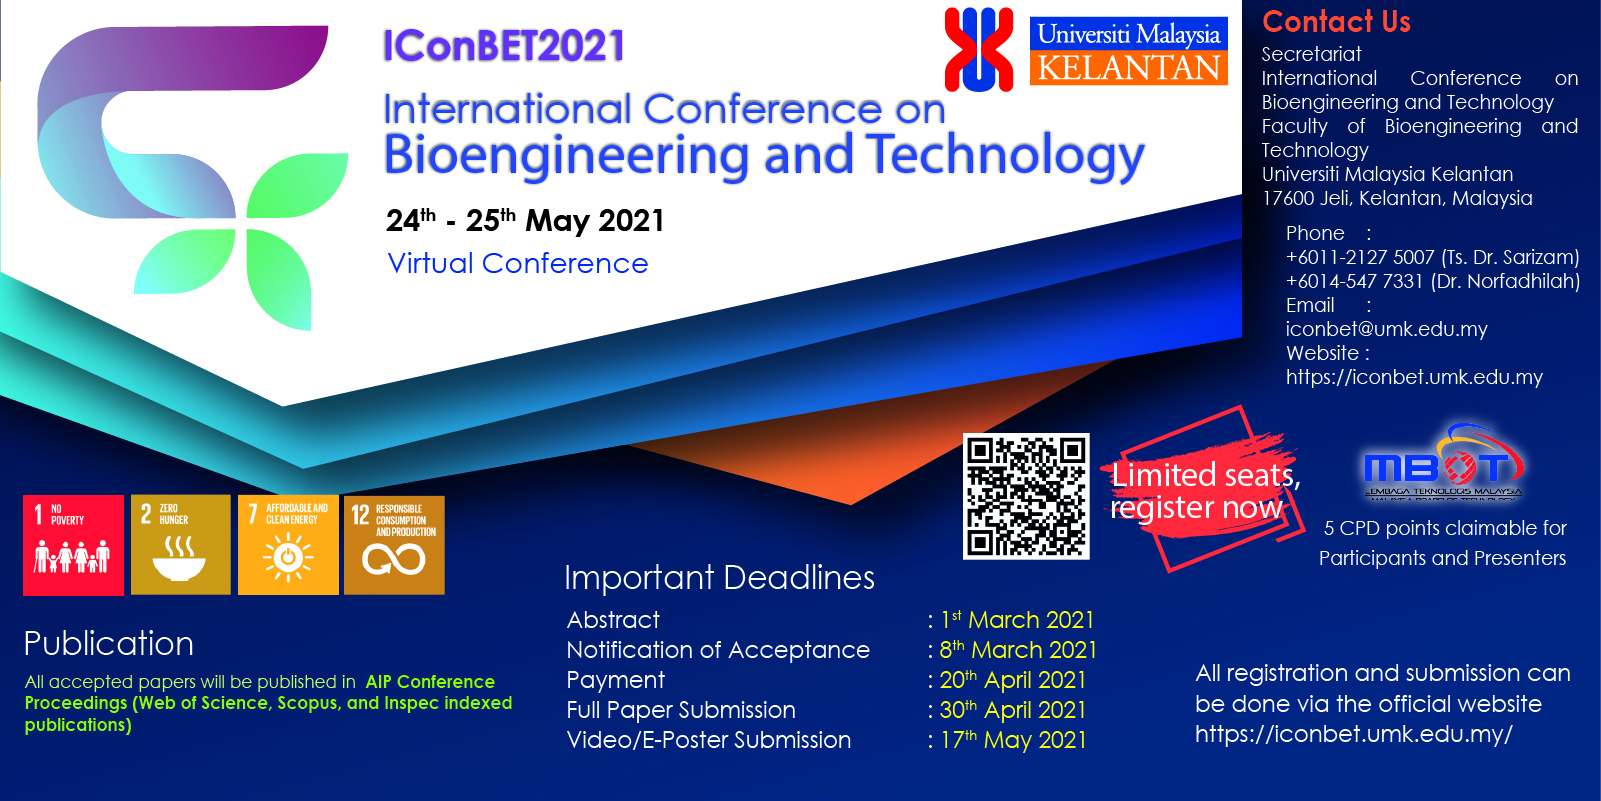 International Conference on Bioengineering and Technology (IConBET2021)